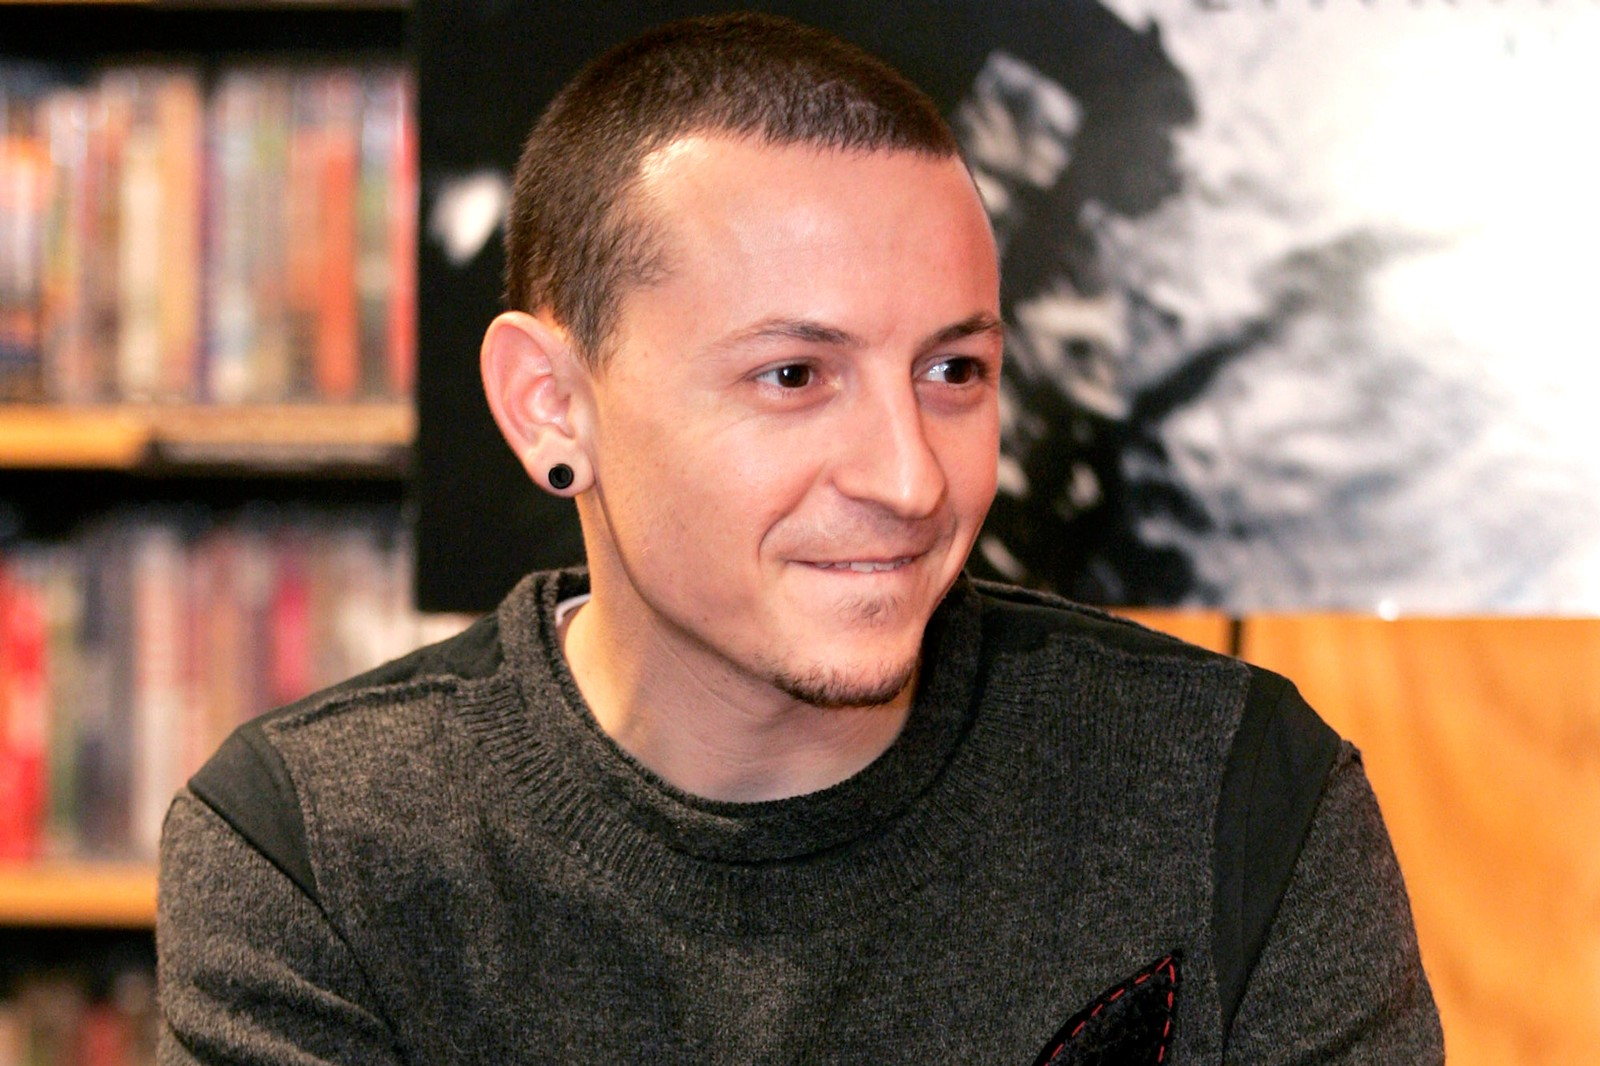 f825dec30f A Year After Chester Bennington's Suicide, What Have We Learned?